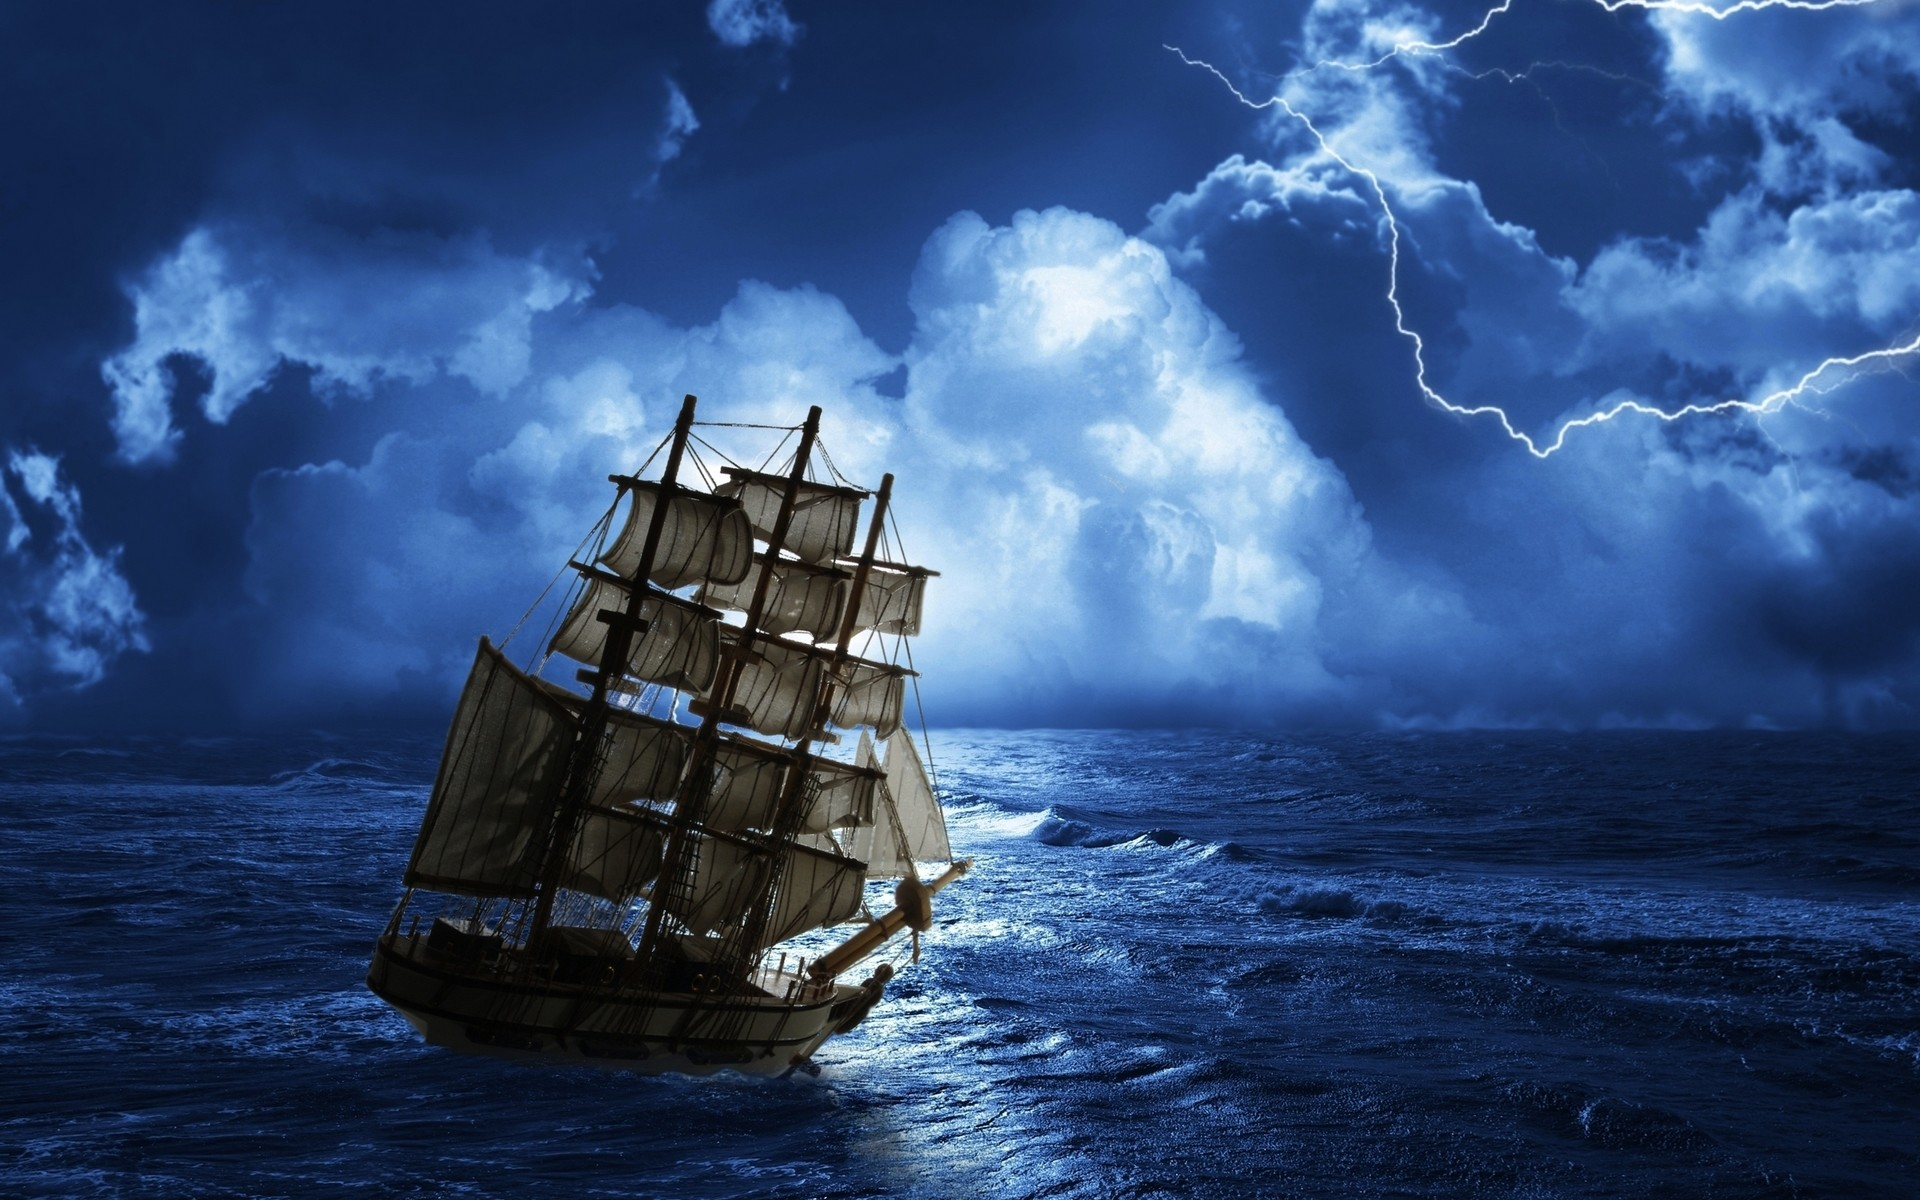 Jolly Roger Pan Pirate Ship Wallpapers HD Wallpapers